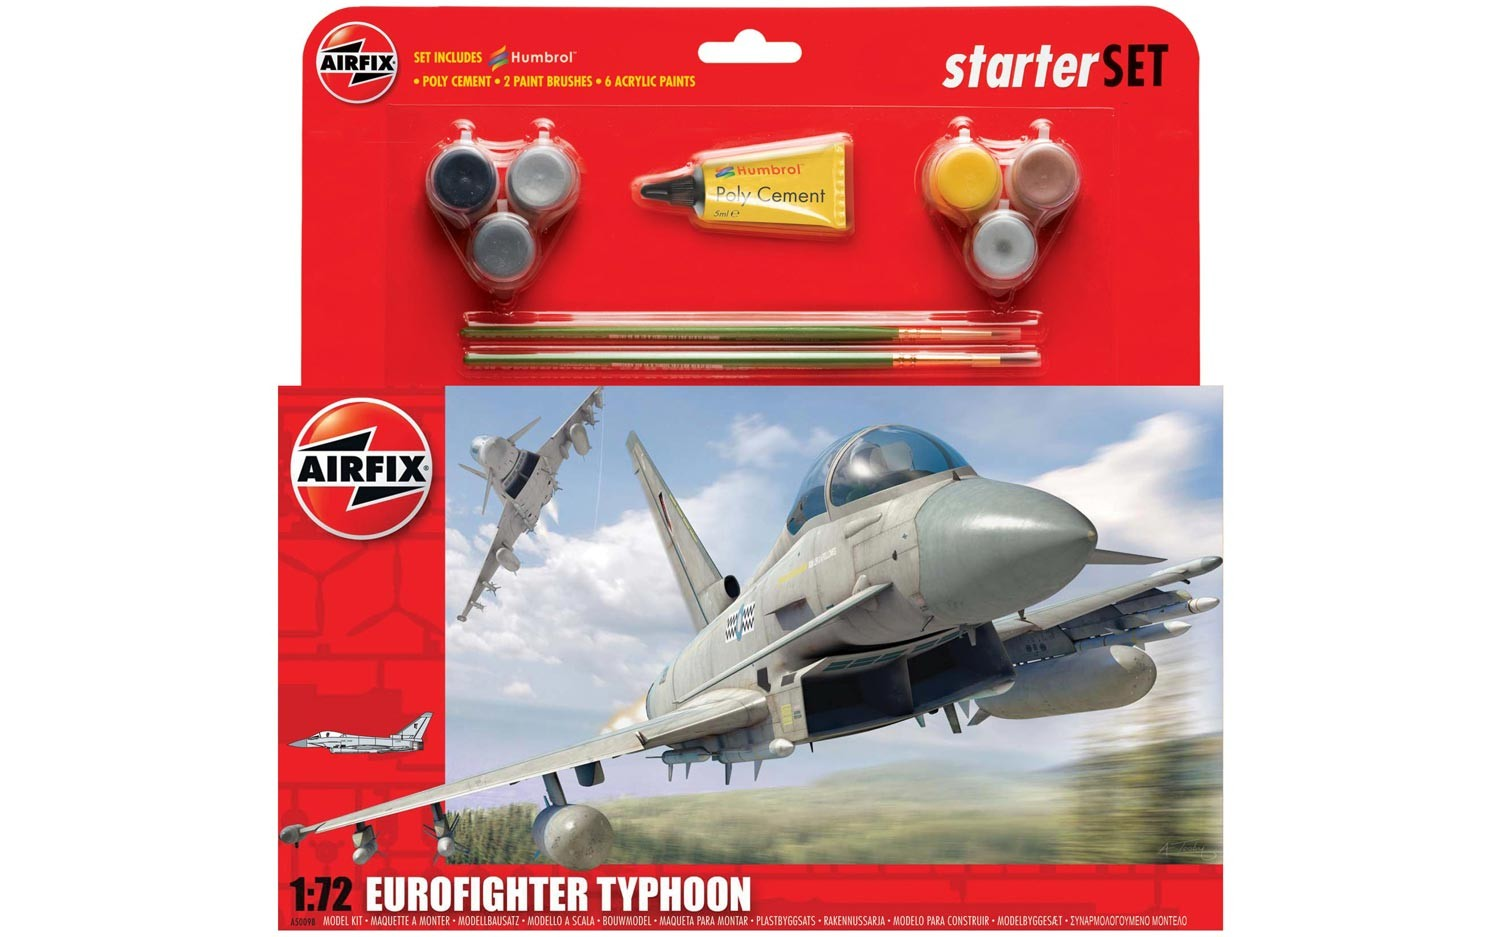 Airfix Eurofighter Typhoon Starter Set 1:72nd Scale.